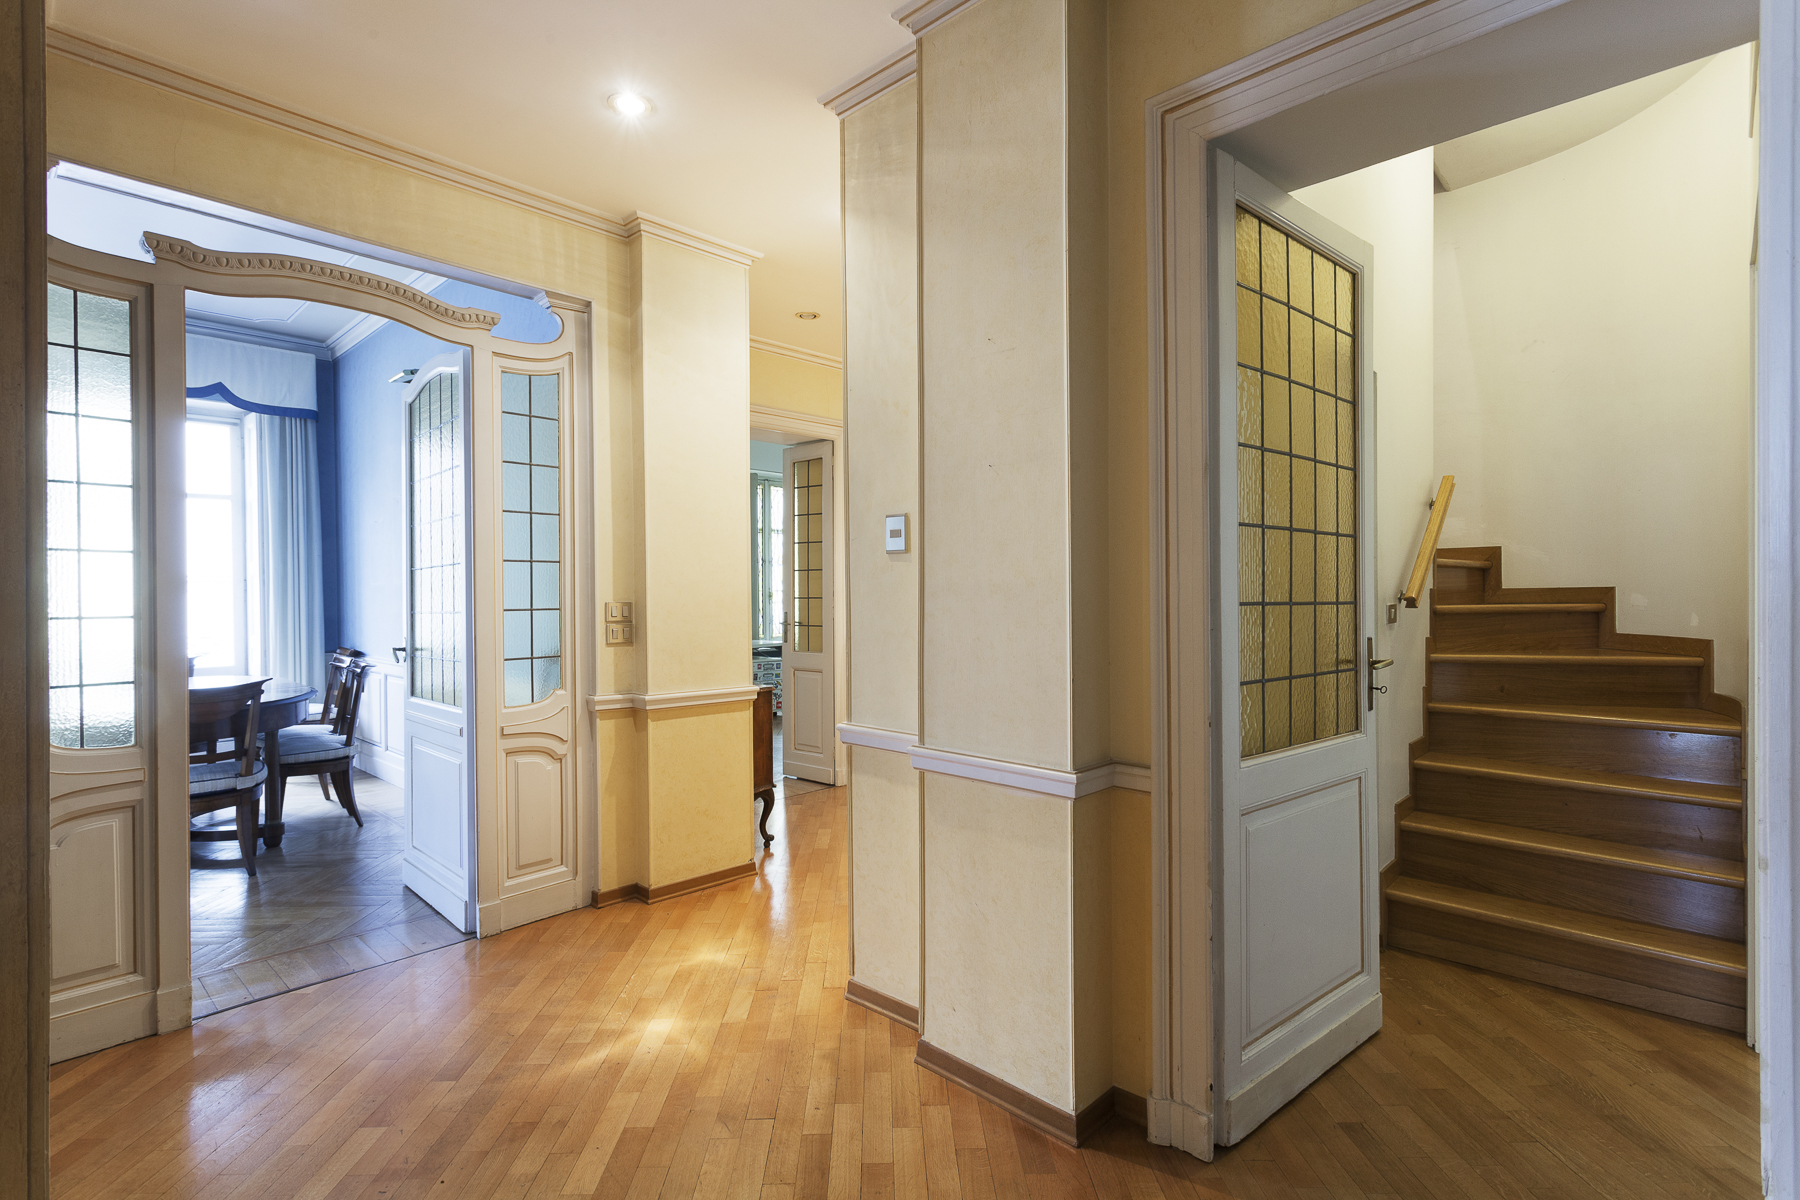 Additional photo for property listing at Bright Apartment with overlooking Mole Antonelliana and Cappuccini Via Maria Vittoria Turin, Turin 10123 Italy